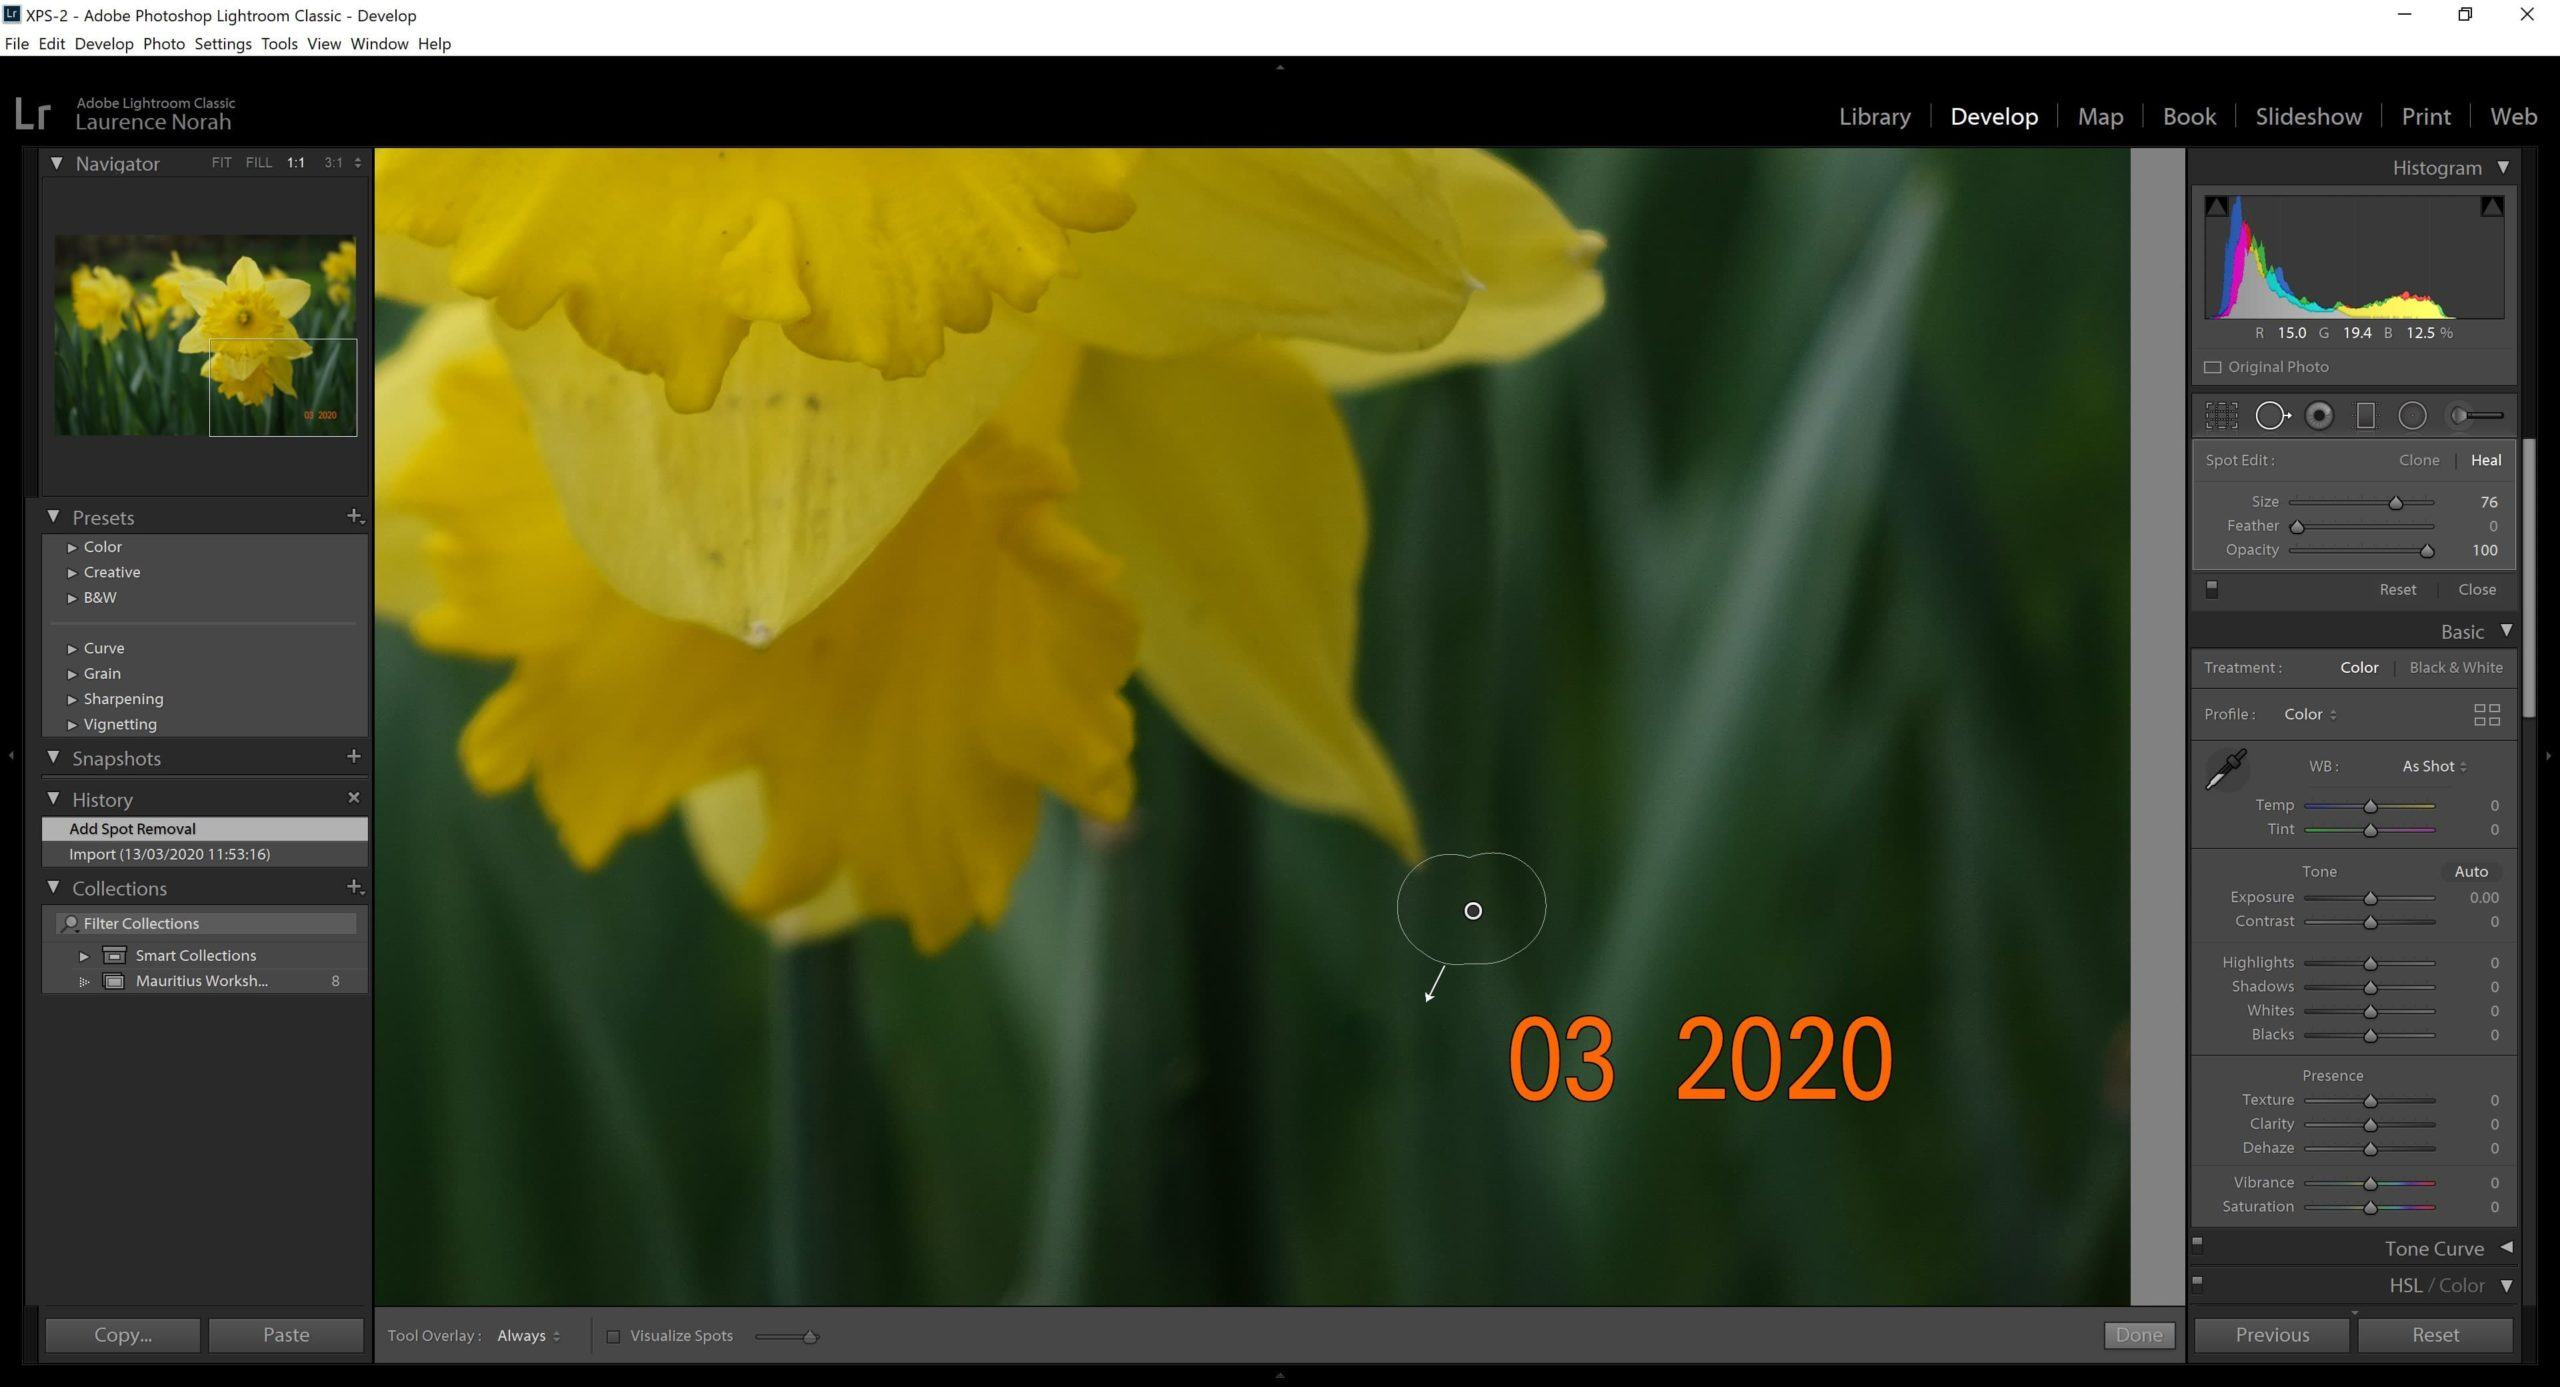 How to Add a Date Stamp to Your Photos